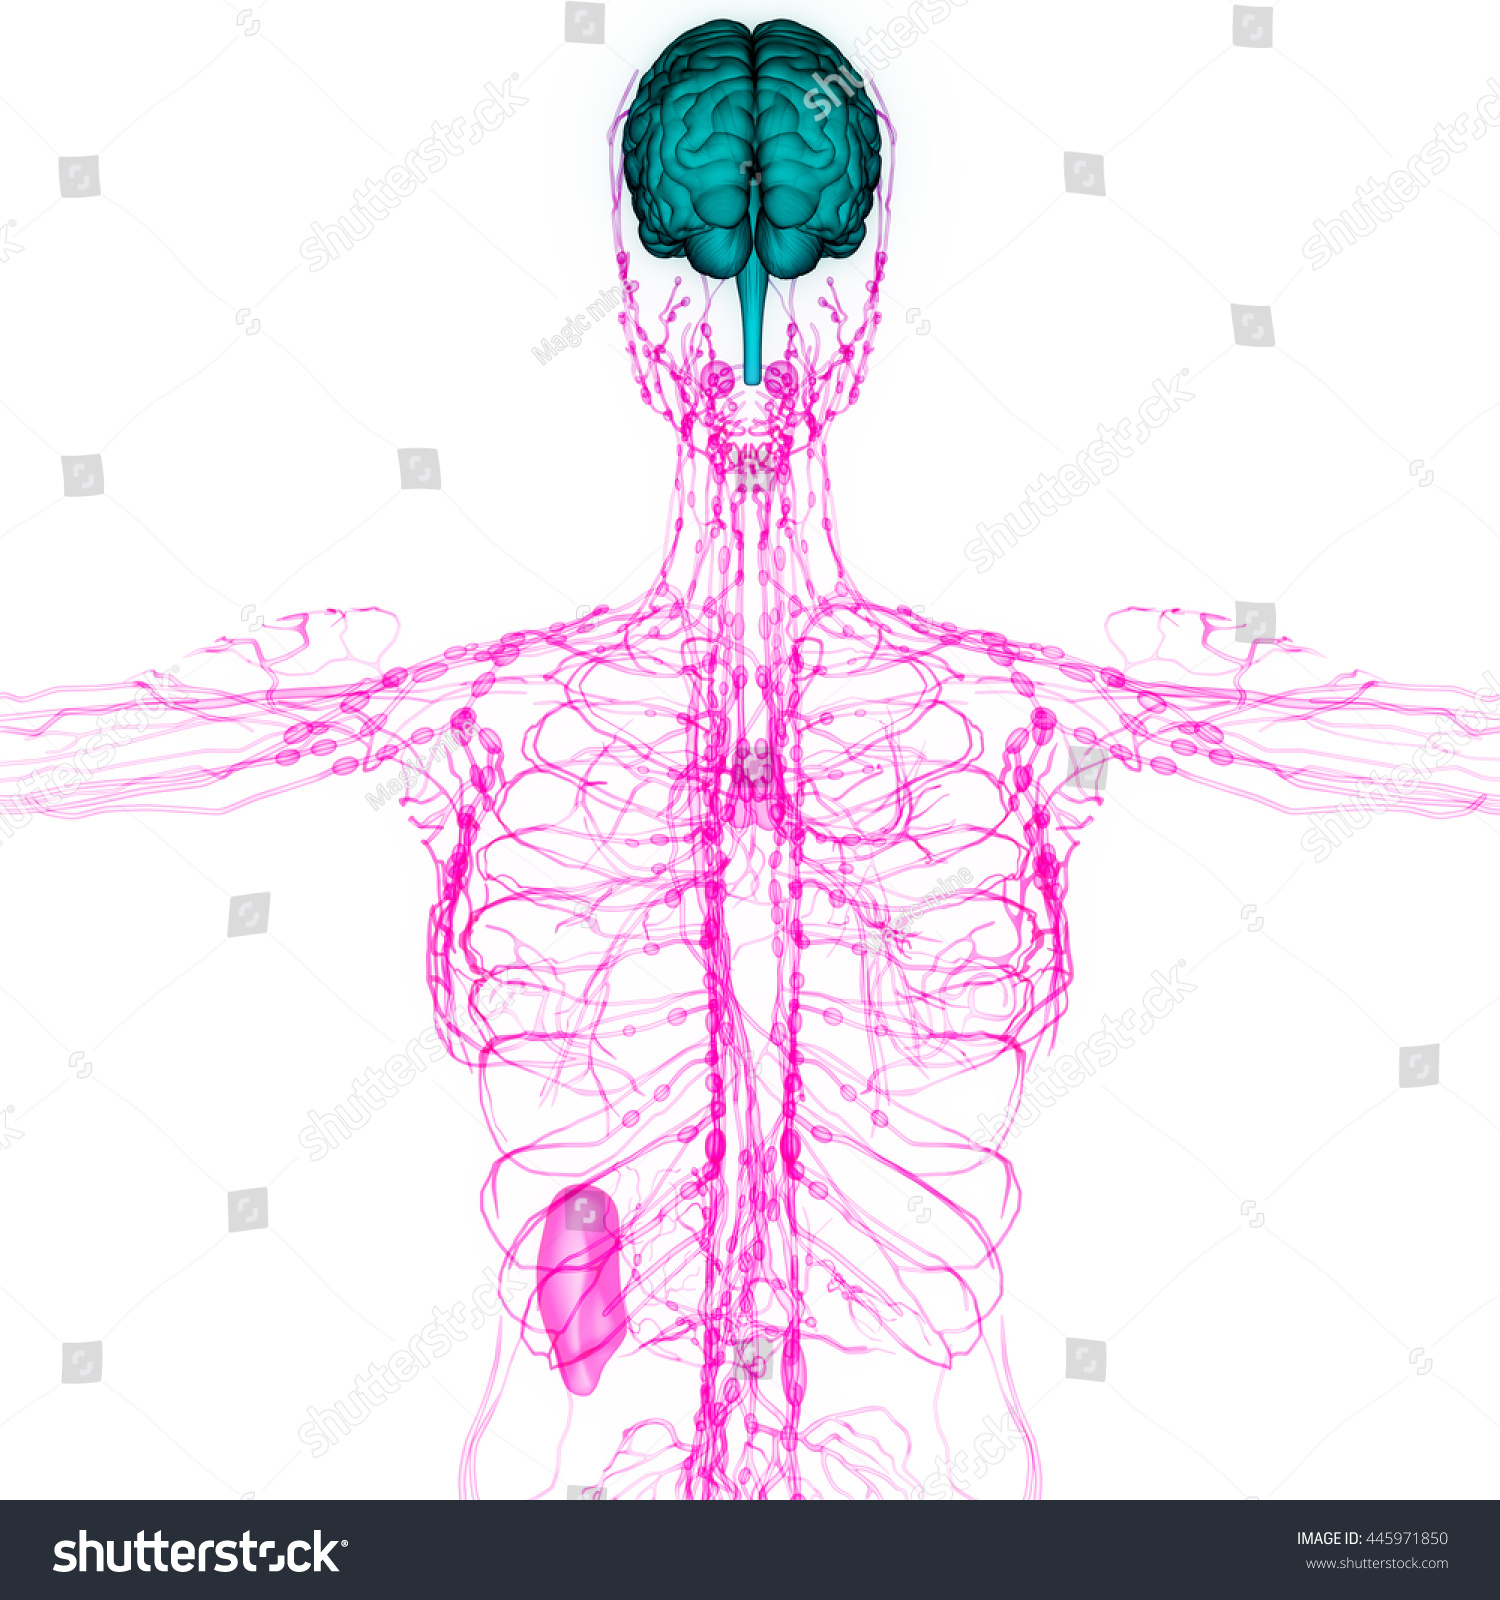 hight resolution of human brain with nerves lymph nodes anatomy 3d